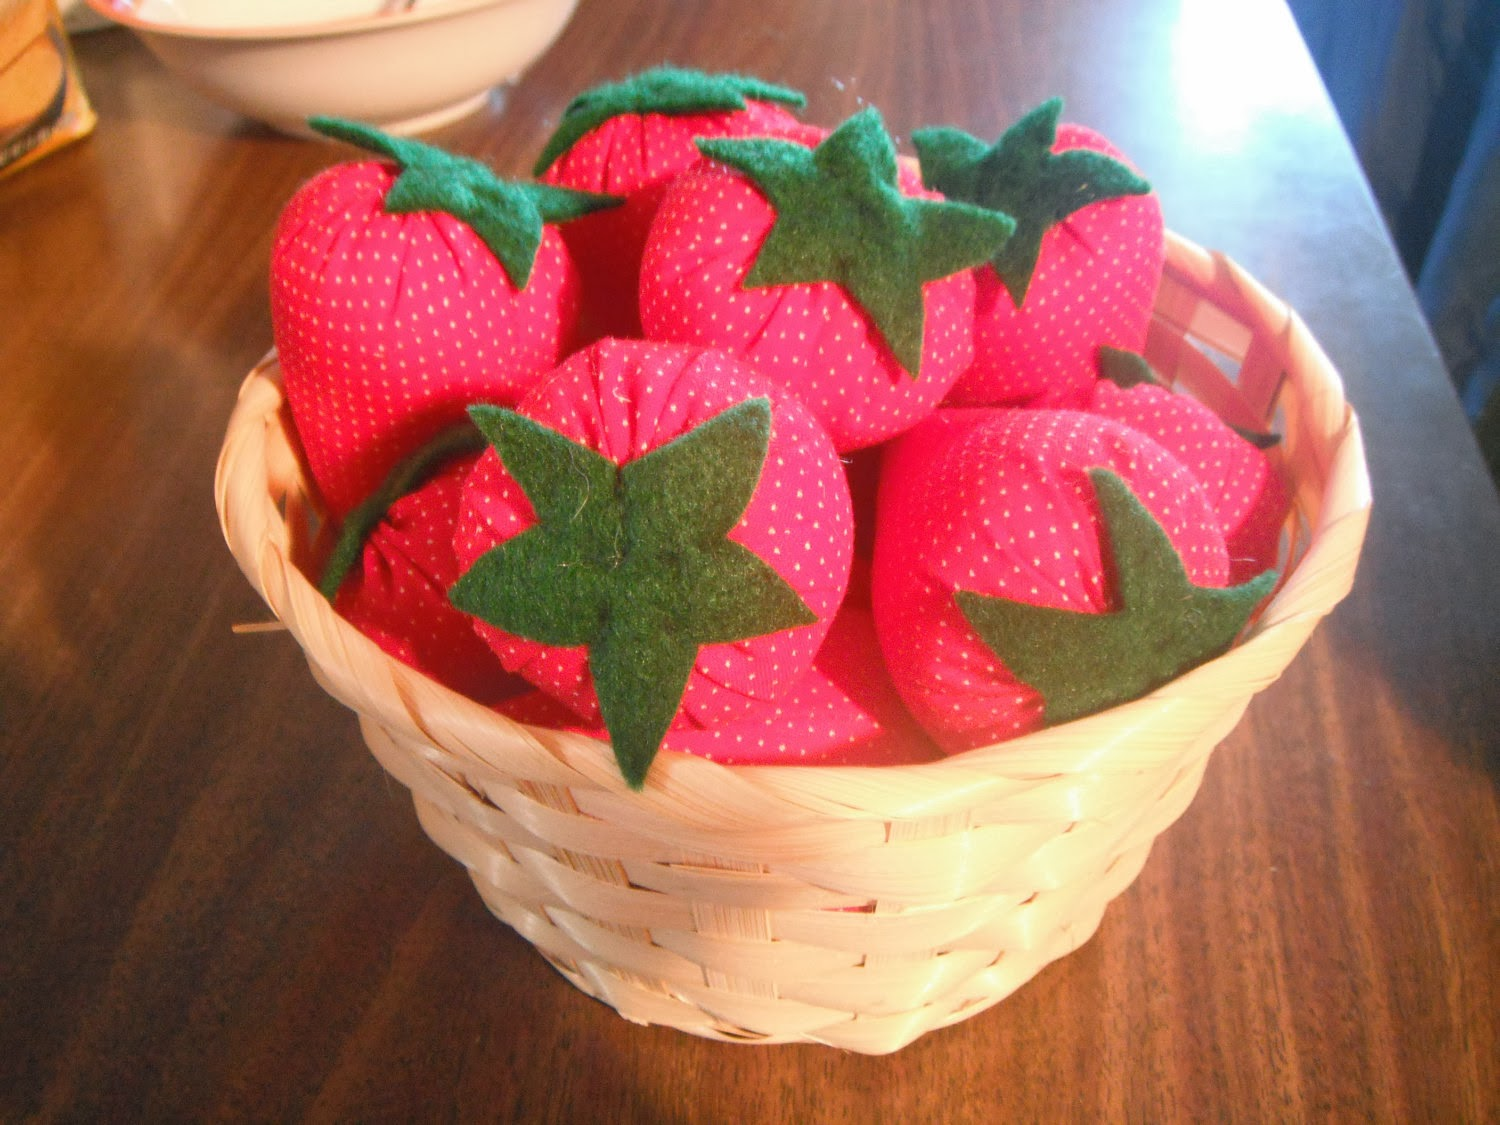 https://www.etsy.com/listing/88854900/basket-of-fabric-strawberries